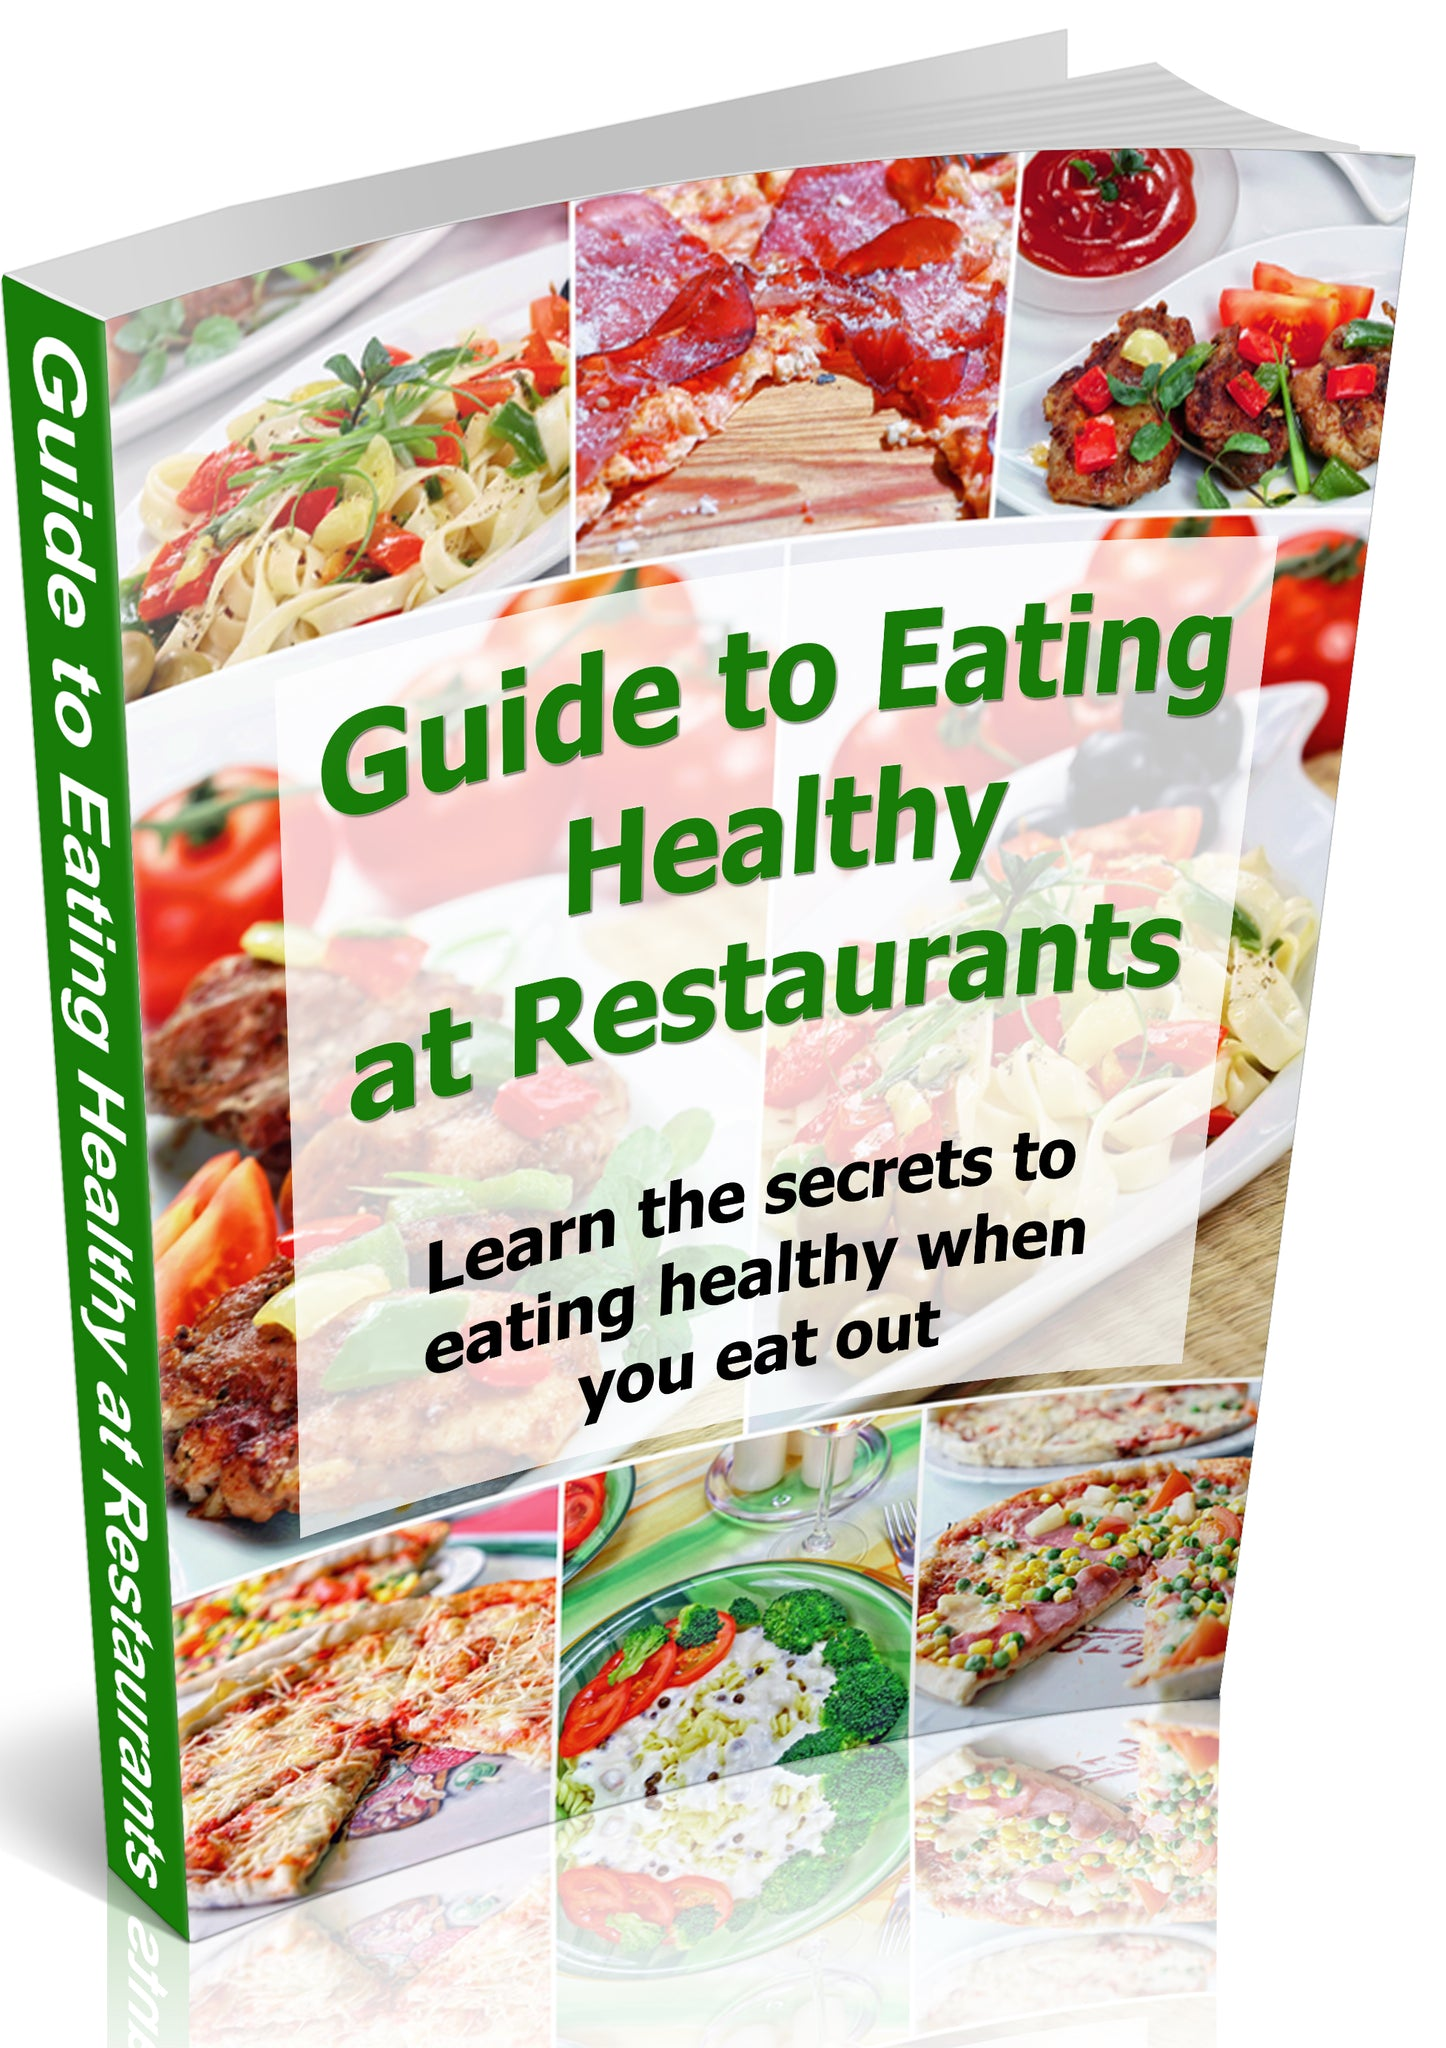 Guide to Eating Healthy at Restaurants - Free Download